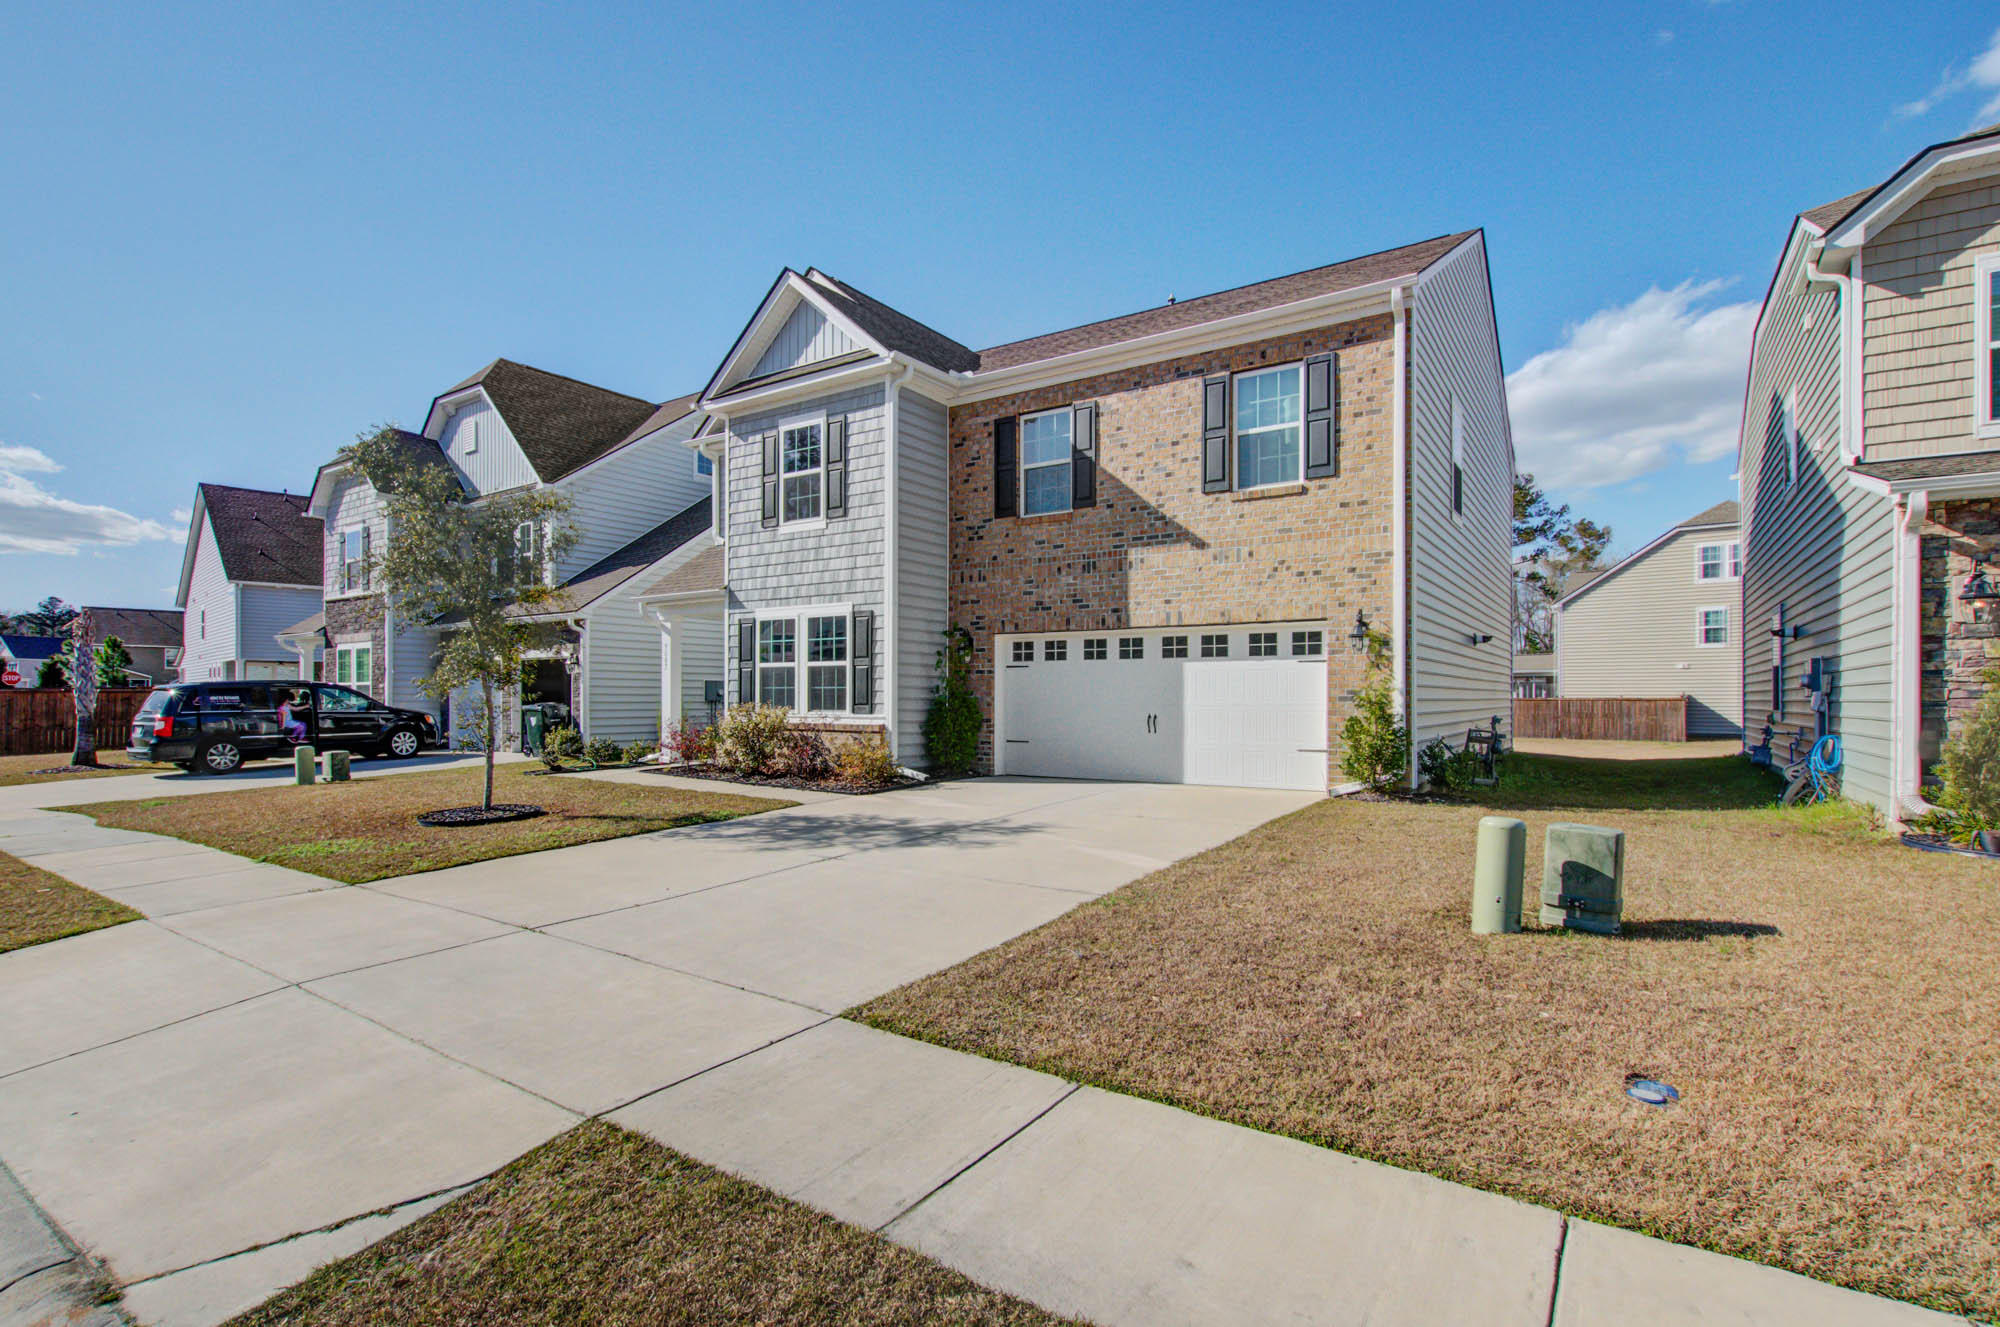 9807 Black Tupelo Lane Ladson, SC 29456